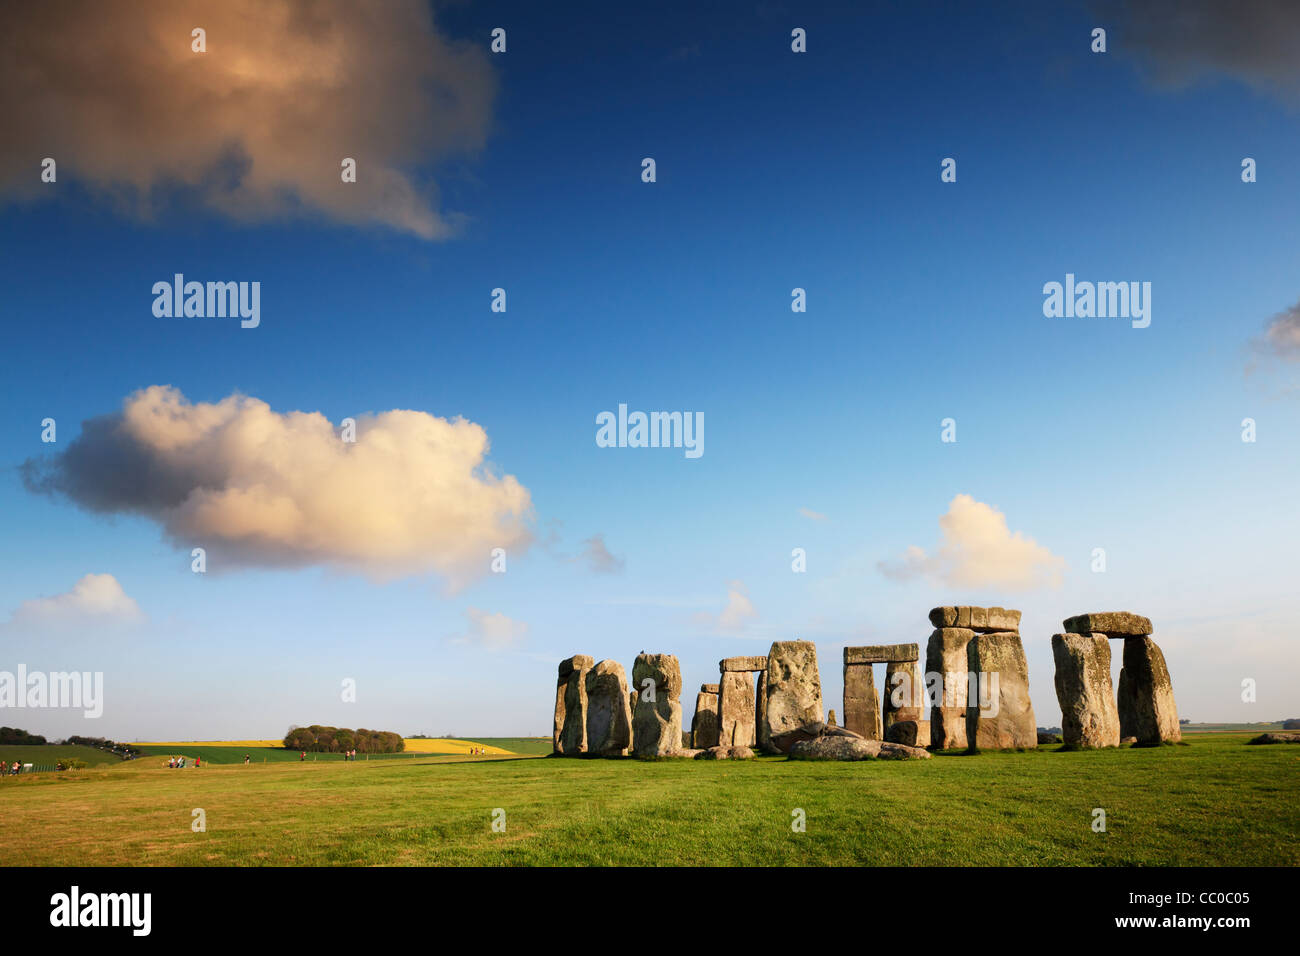 Stonehenge, Wiltshire, England, on a beautiful summer evening. - Stock Image